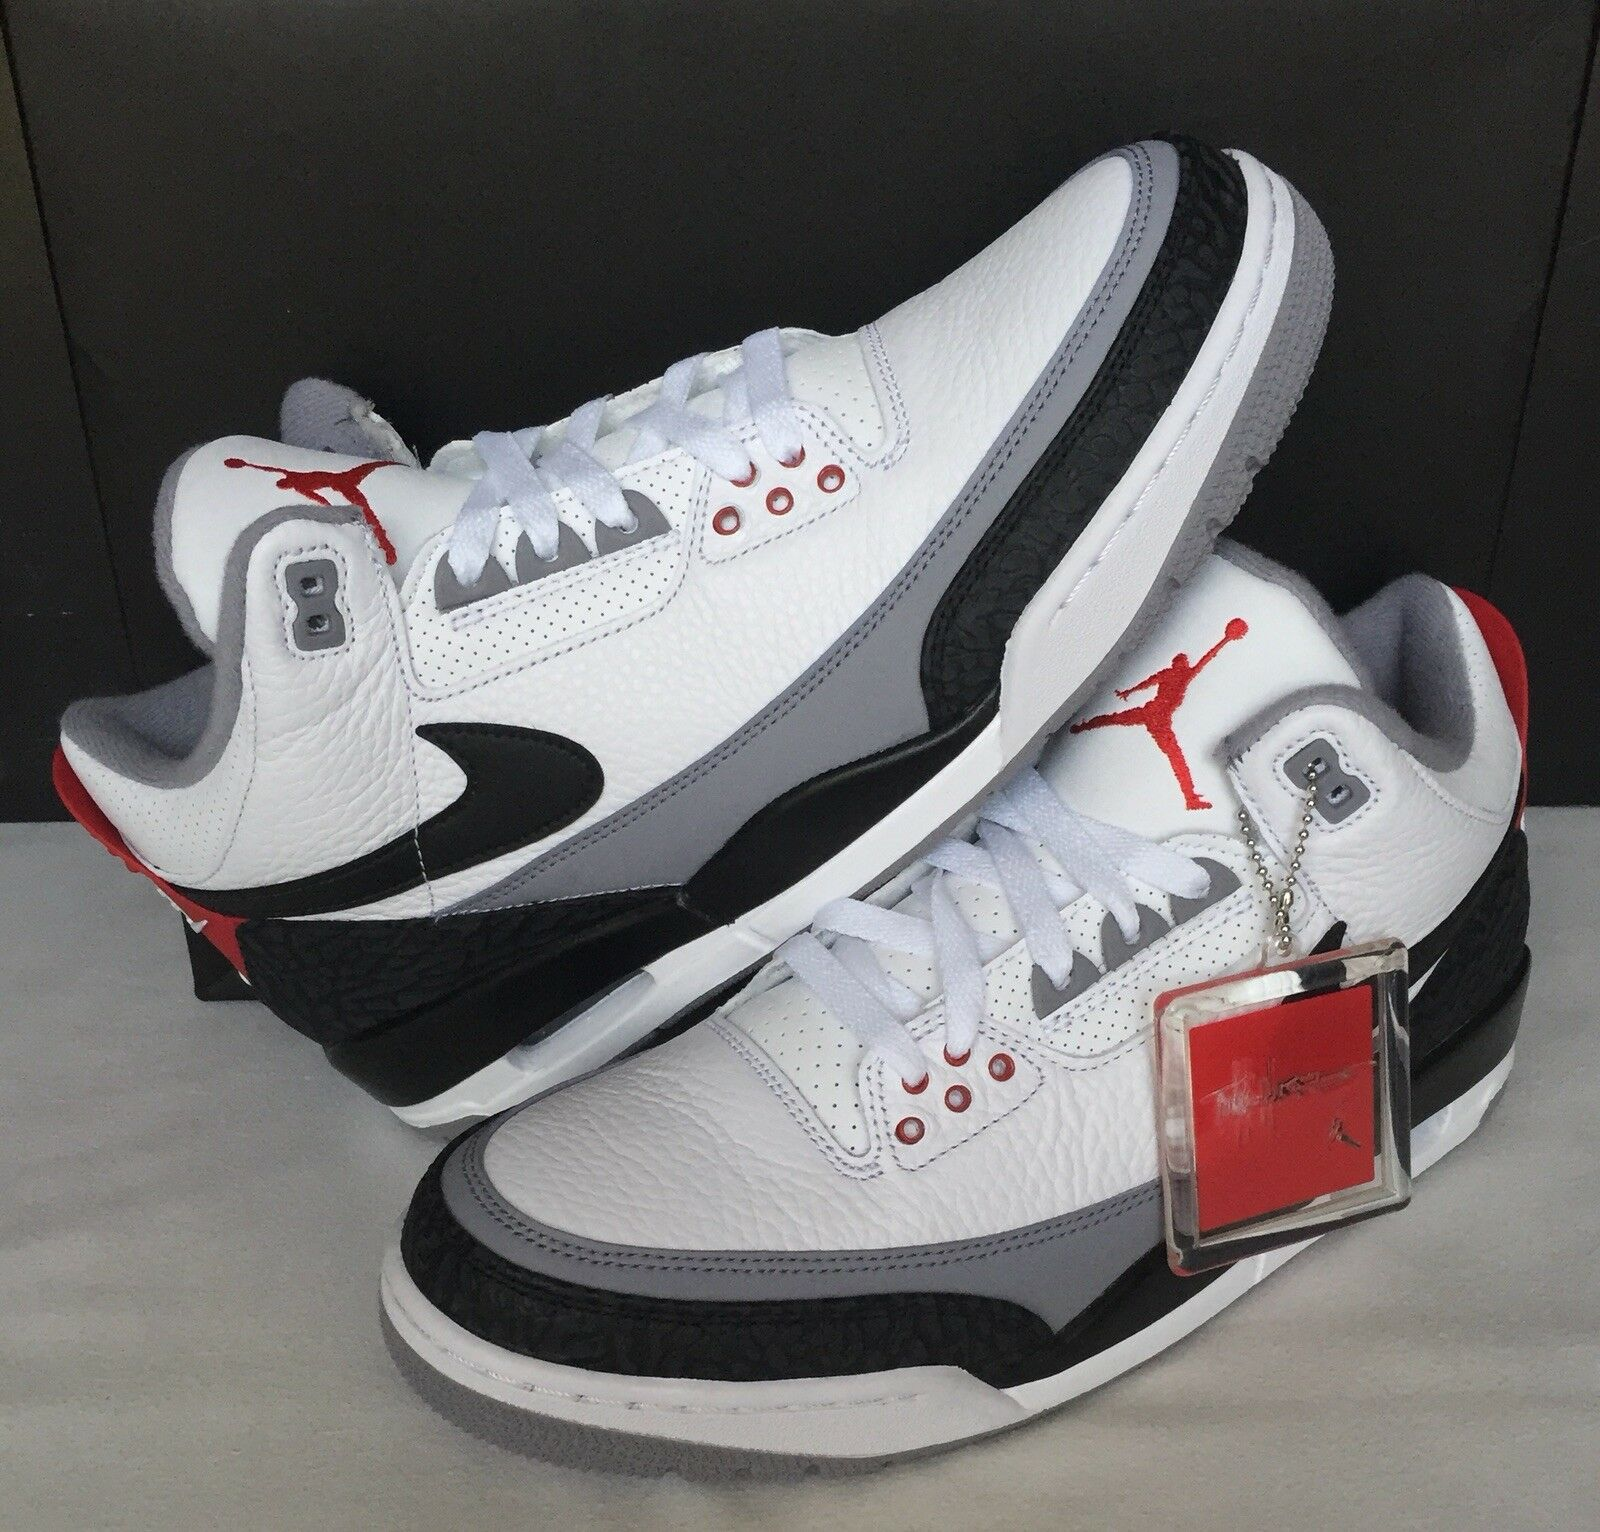 Nike Air Jordan Retro 3 Tinker NRG White/Black/Fire Red AQ3835 160 Men Size 11